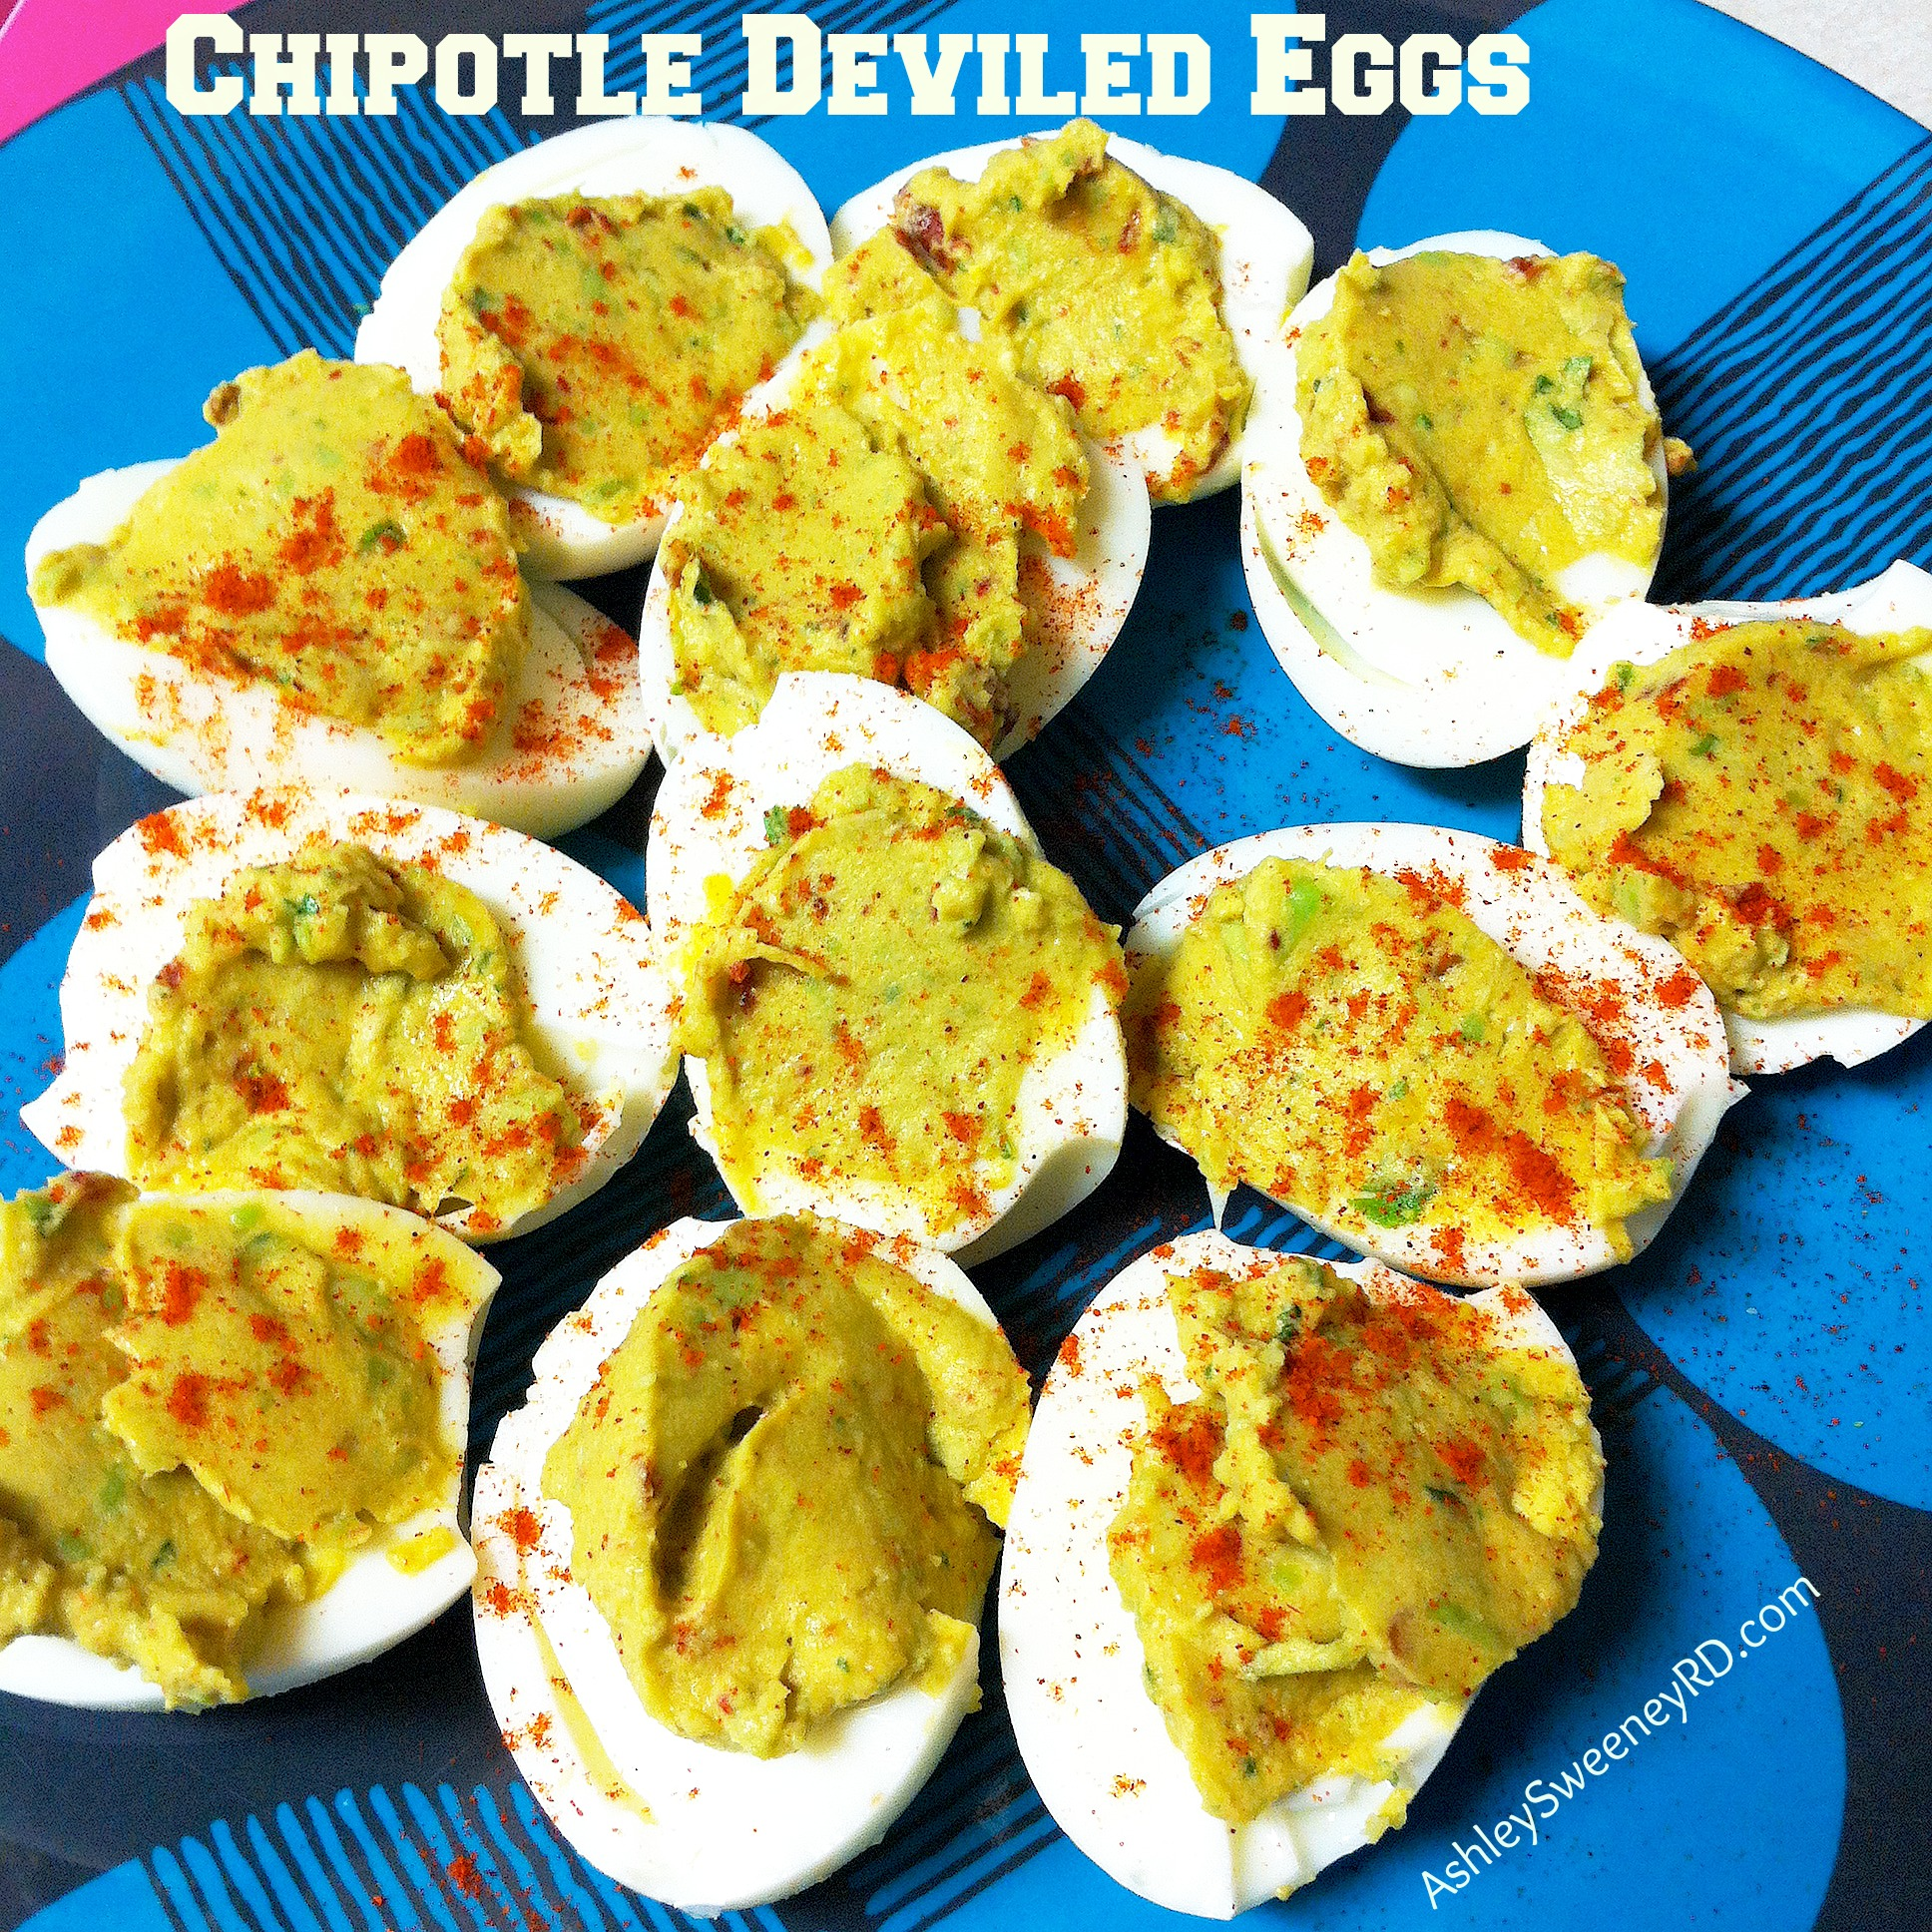 chipotle deviled eggs | Ashley Sweeney RD